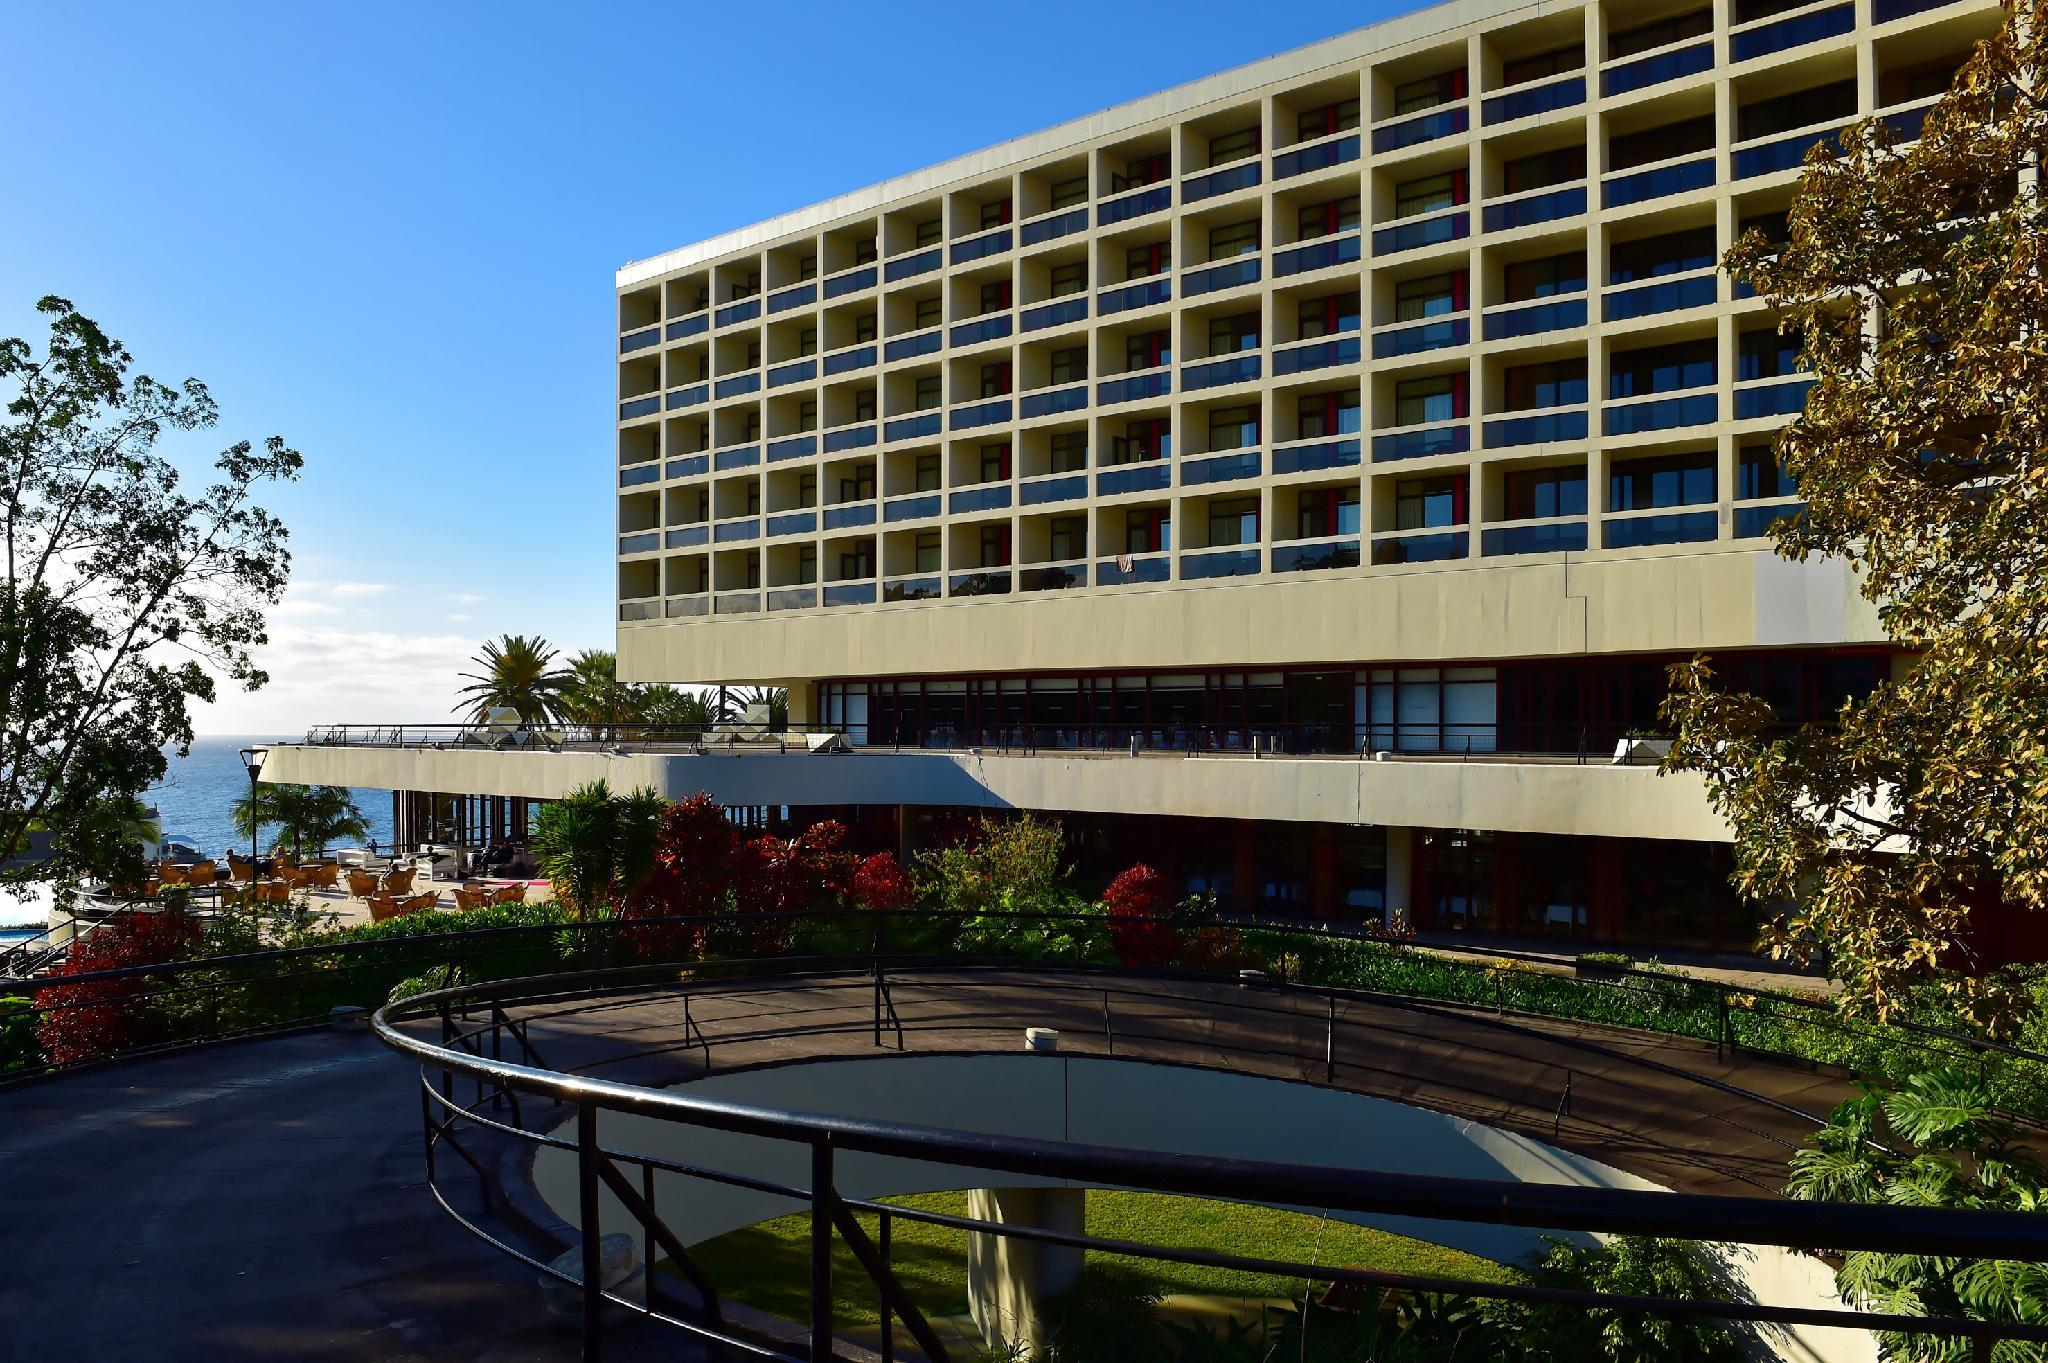 Jacuzzi Pool Utomhus Best Price On Pestana Casino Park Hotel Casino In Funchal Reviews